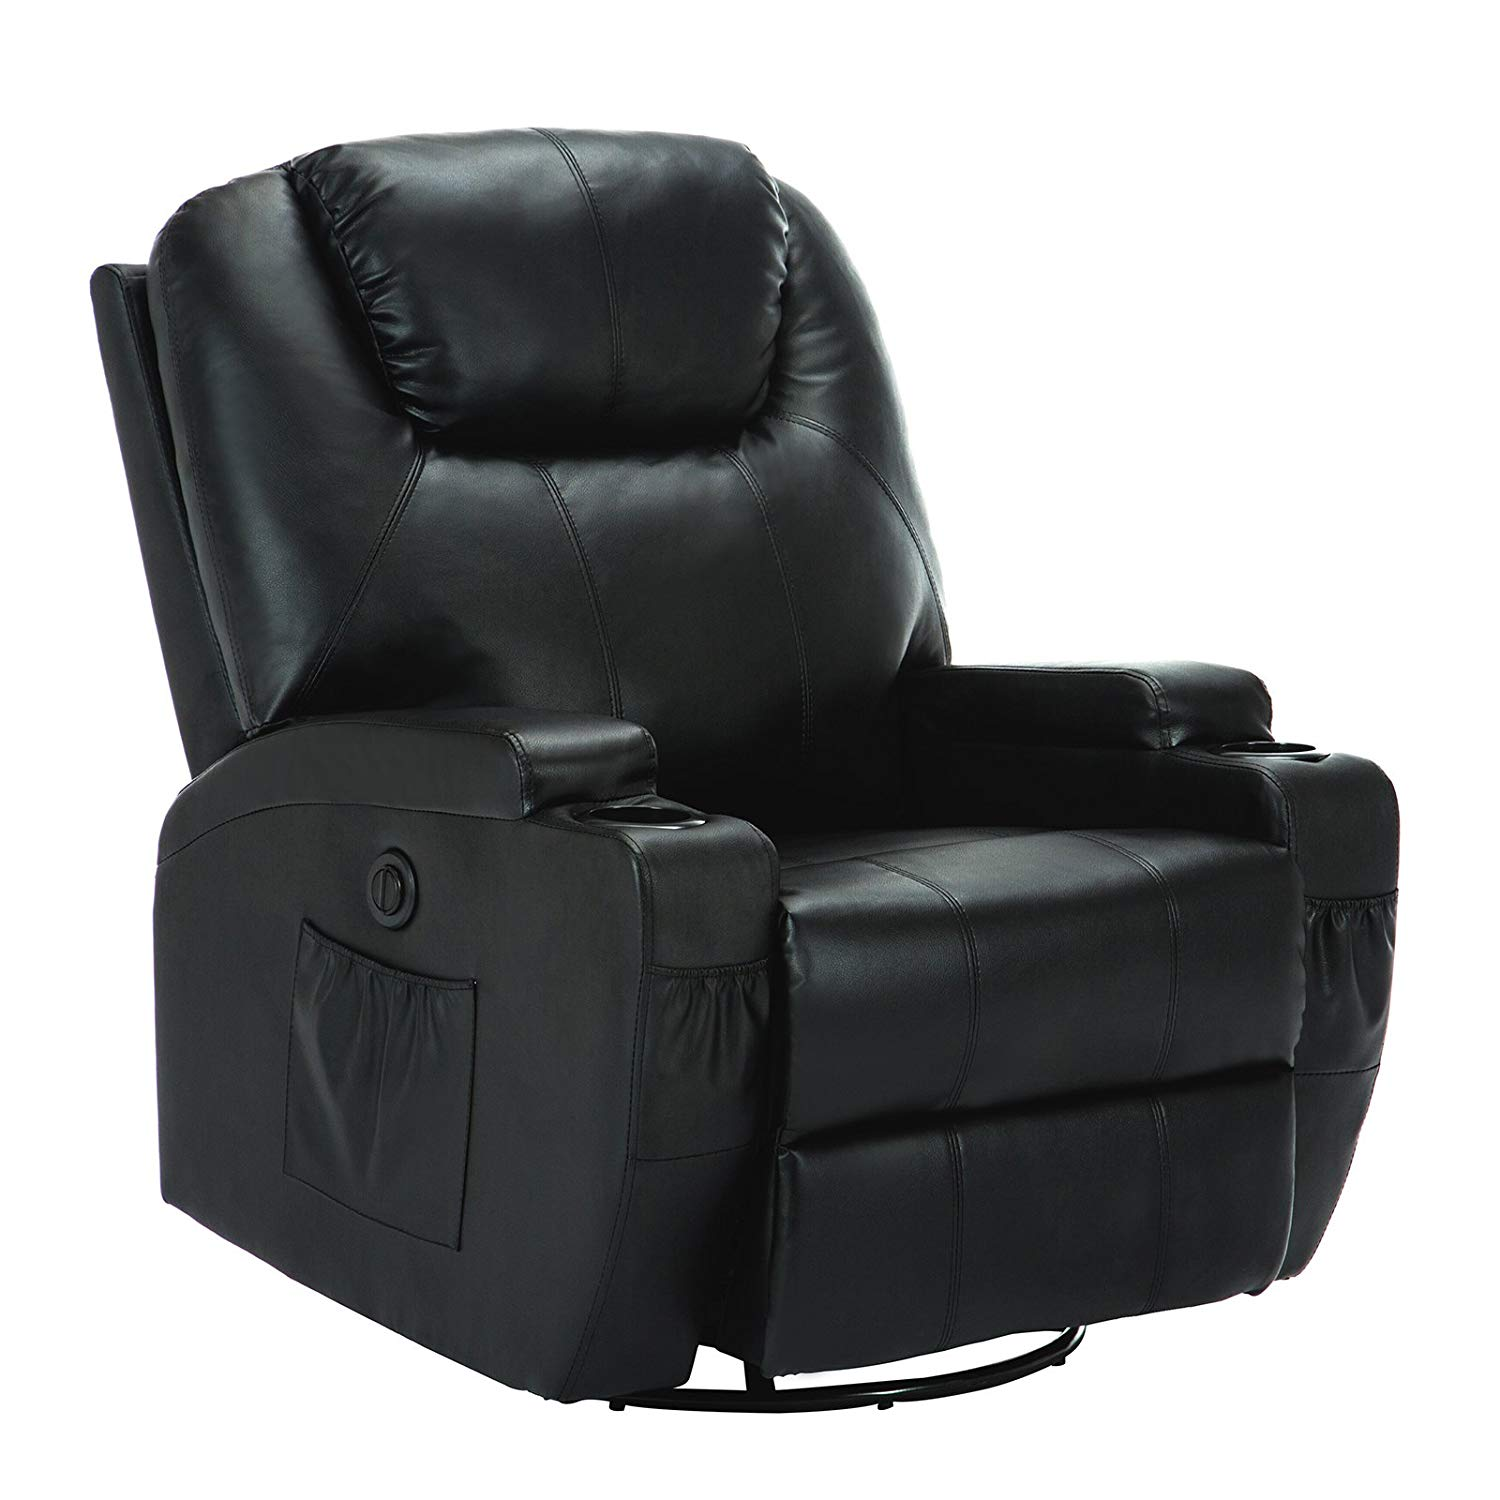 ORKAN Recliner Electric Sofa